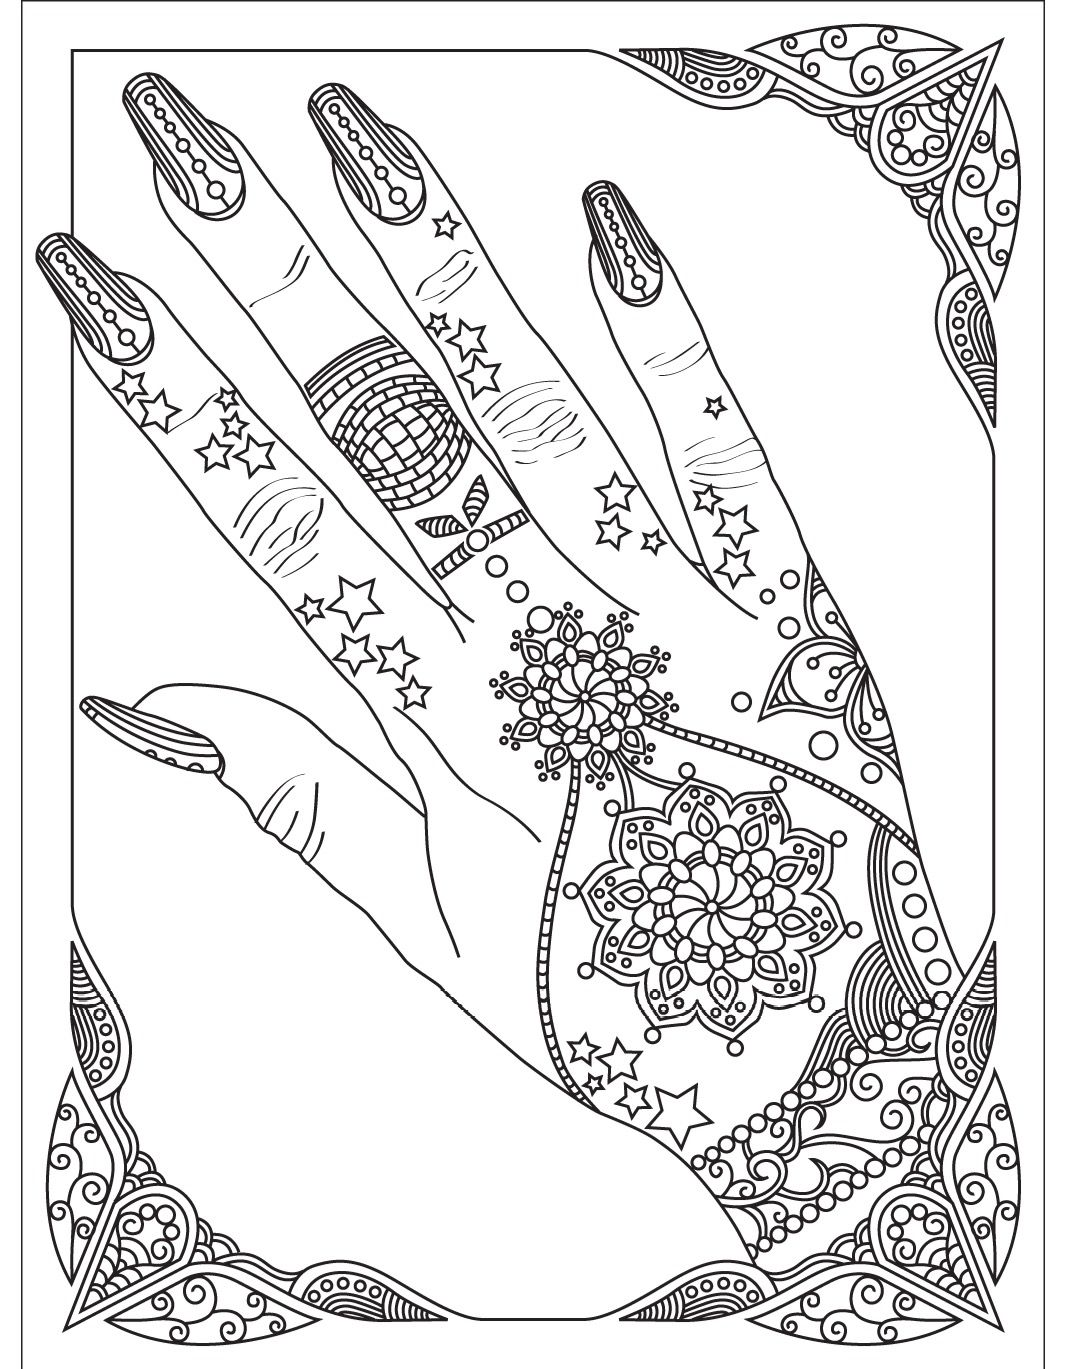 Nails | Colorish: coloring book app for adults by GoodSoftTech | Coloring  book app, Coloring books, Cute coloring pages